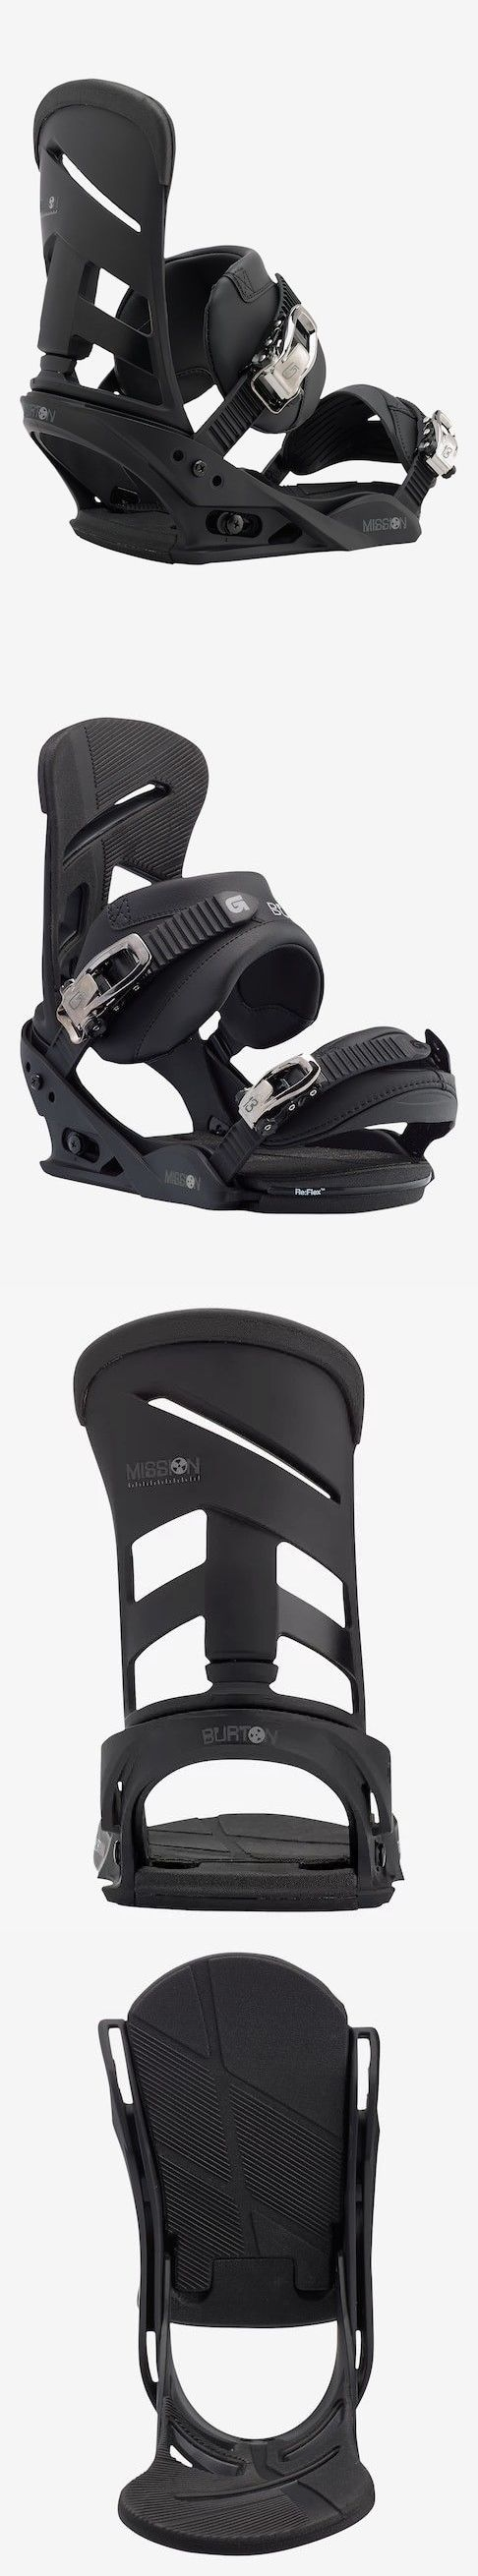 Bindings 21248: Burton Mission Reflex Snowboard Bindings 2017- Mens Large ( Shoe Size 10+) New -> BUY IT NOW ONLY: $189.95 on eBay!